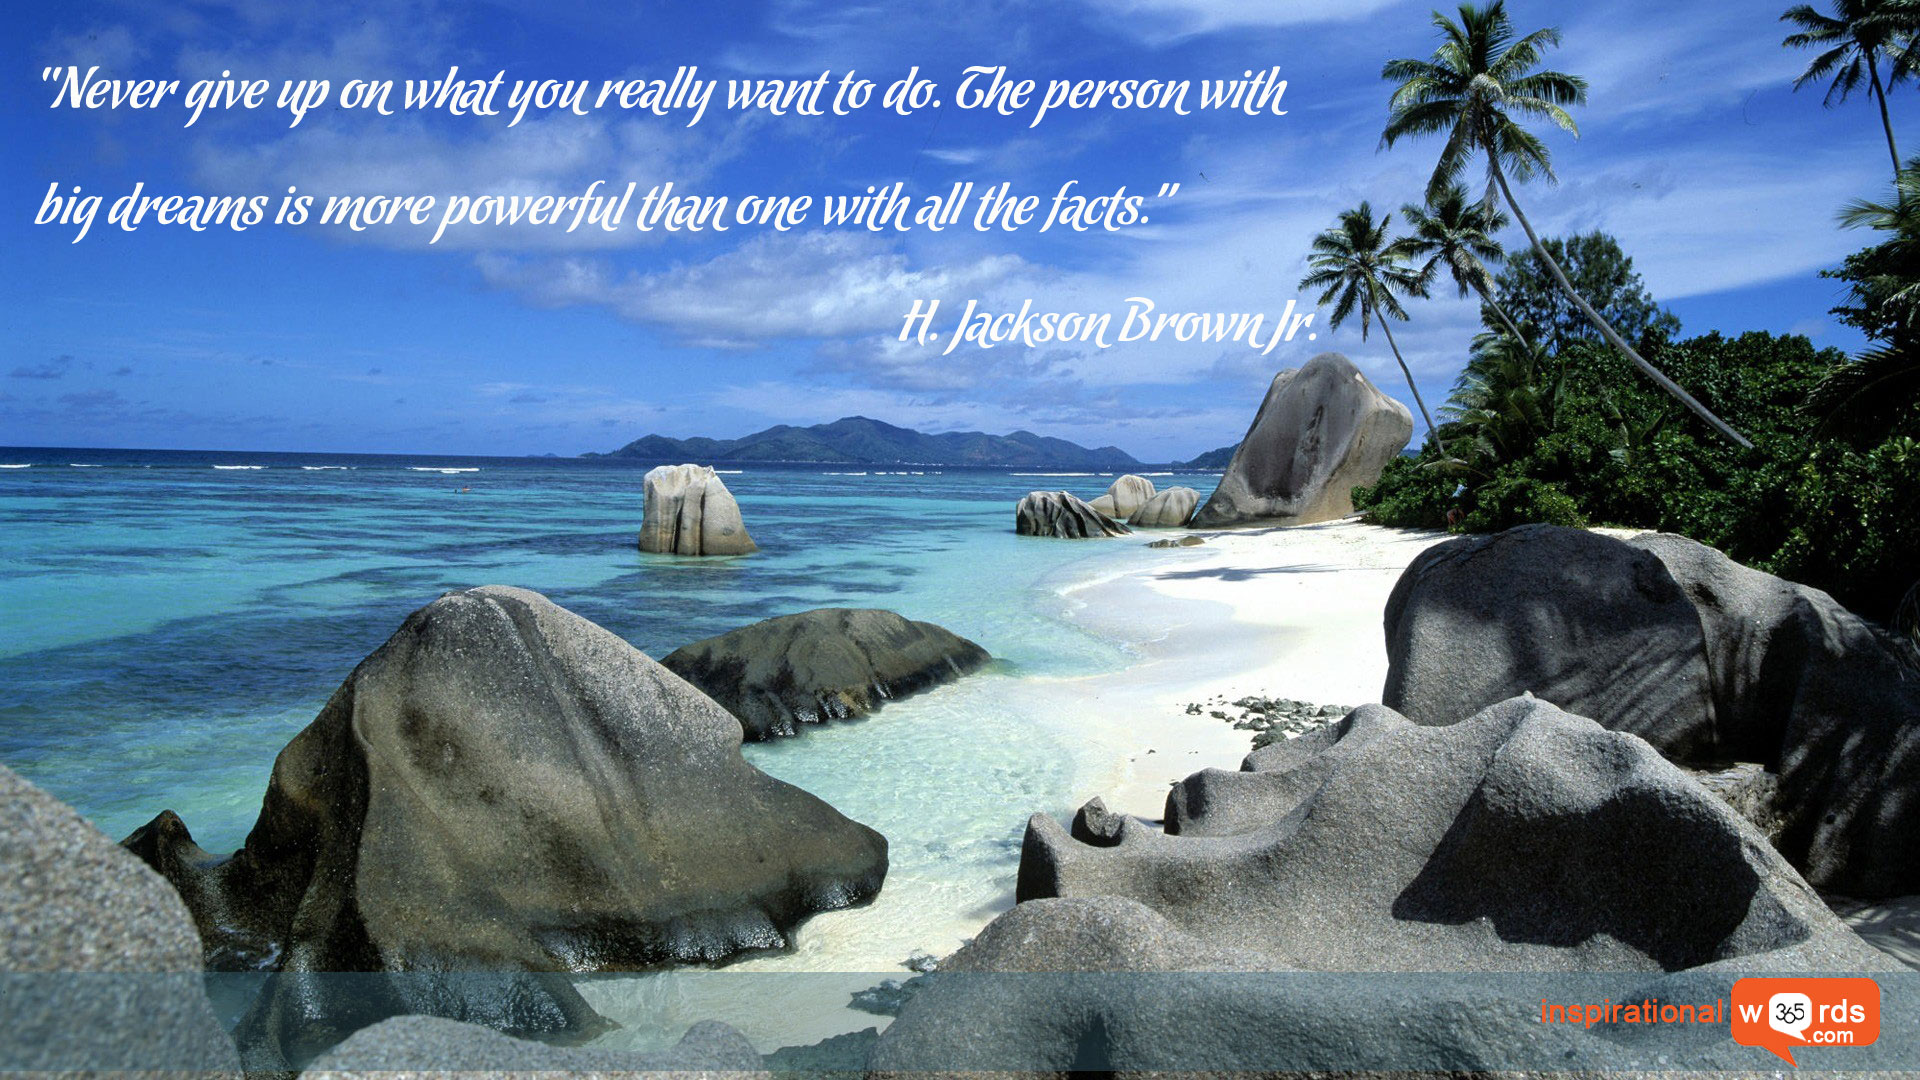 Inspirational Wallpaper Quote by H. Jackson Brown Jr.